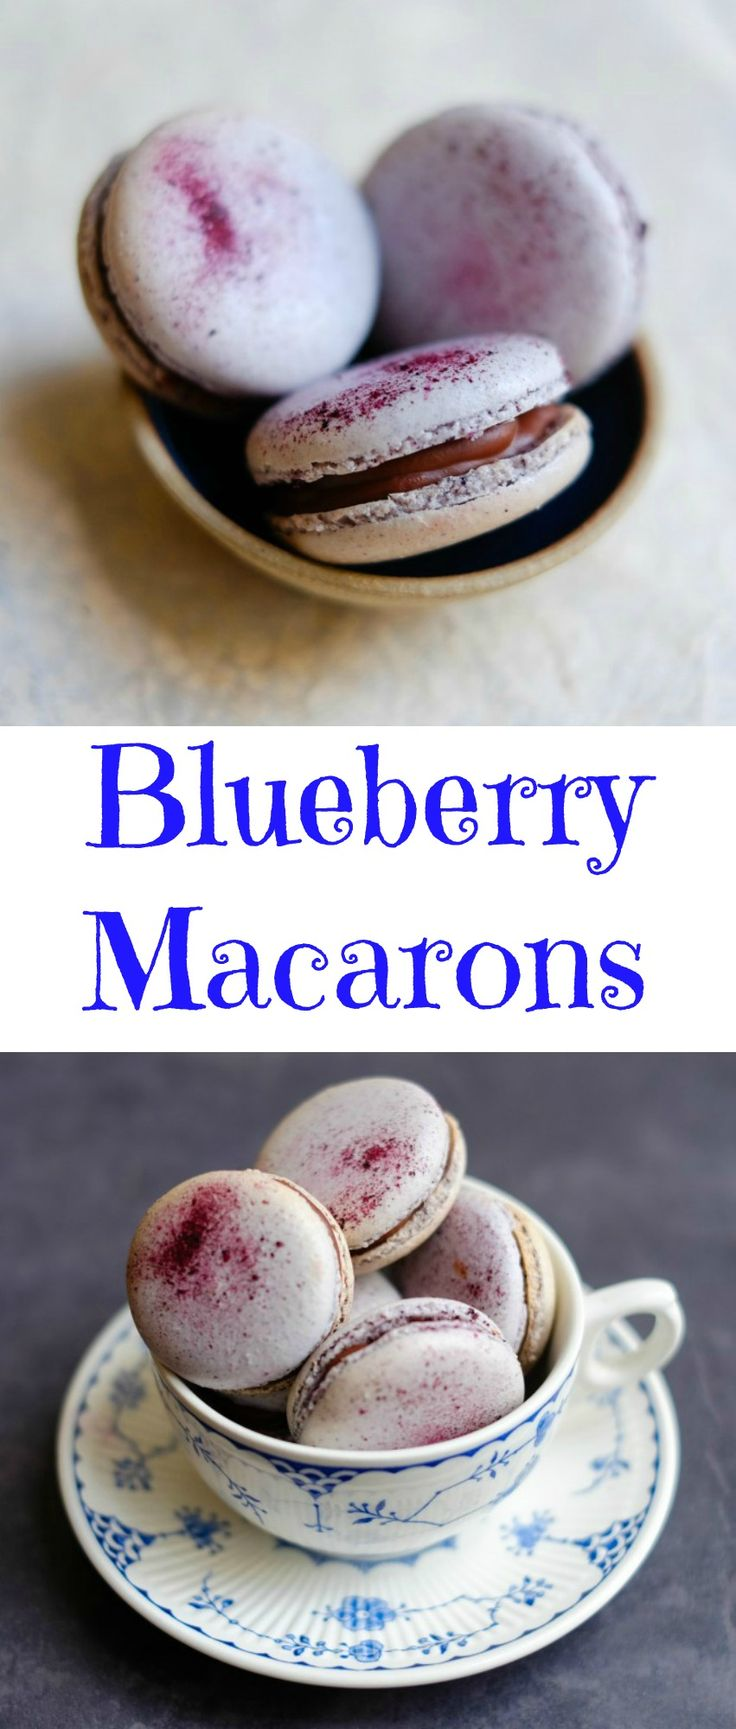 Blueberry Macarons for Blue Monday - Patisserie Makes Perfect